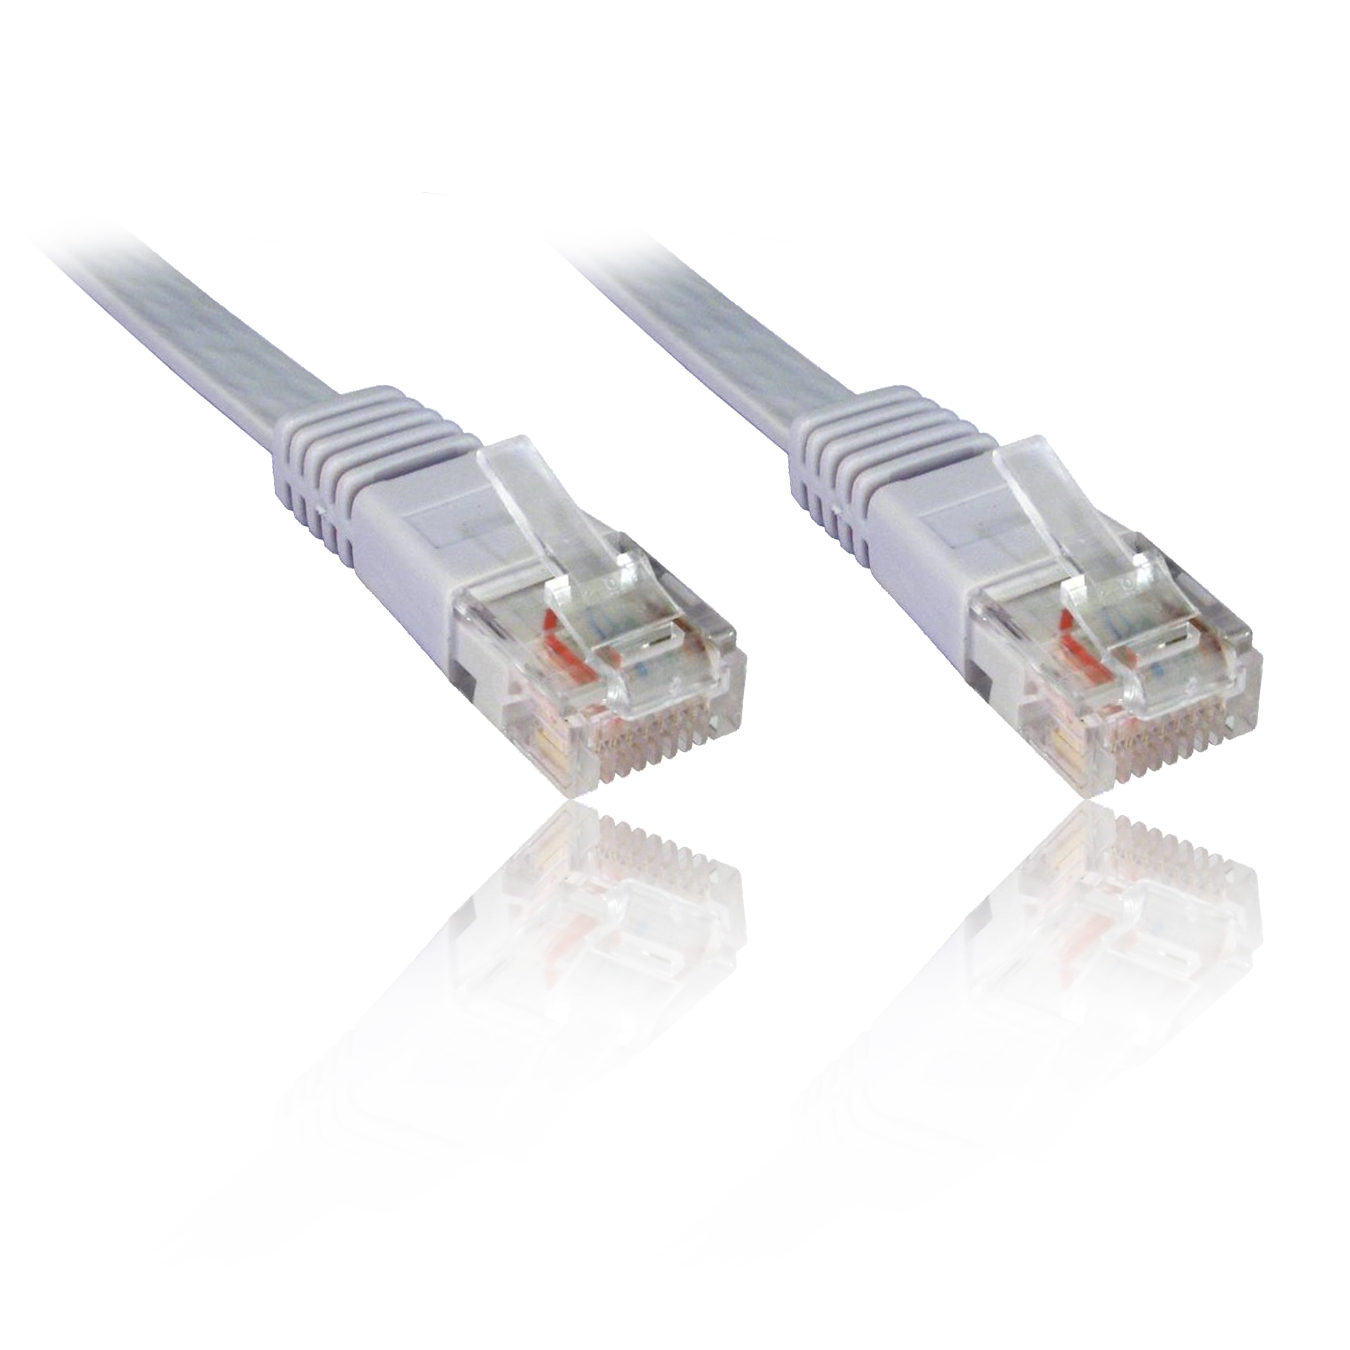 15m 50 Ft Flat Network Ethernet Cat5e Patch Cable Fly Lead